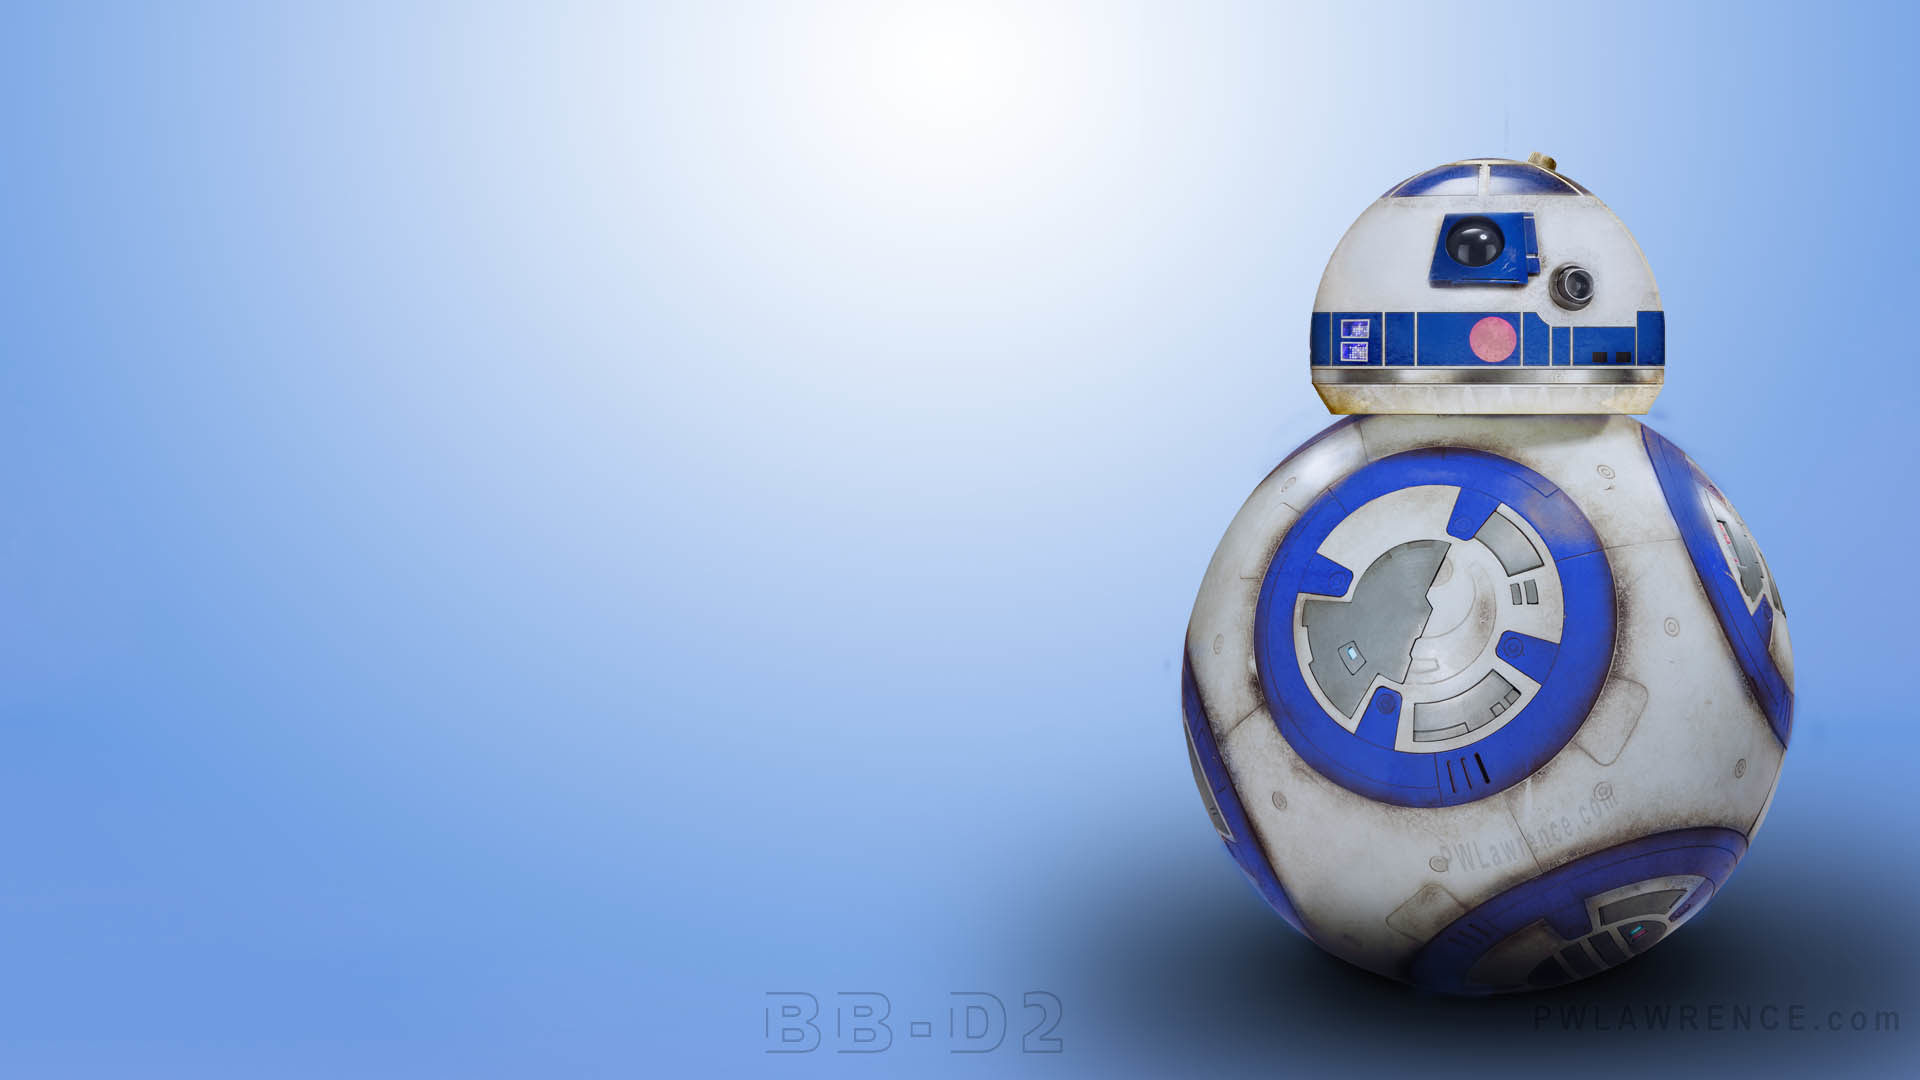 Bb8 R2D2 Wallpaper 76 Images